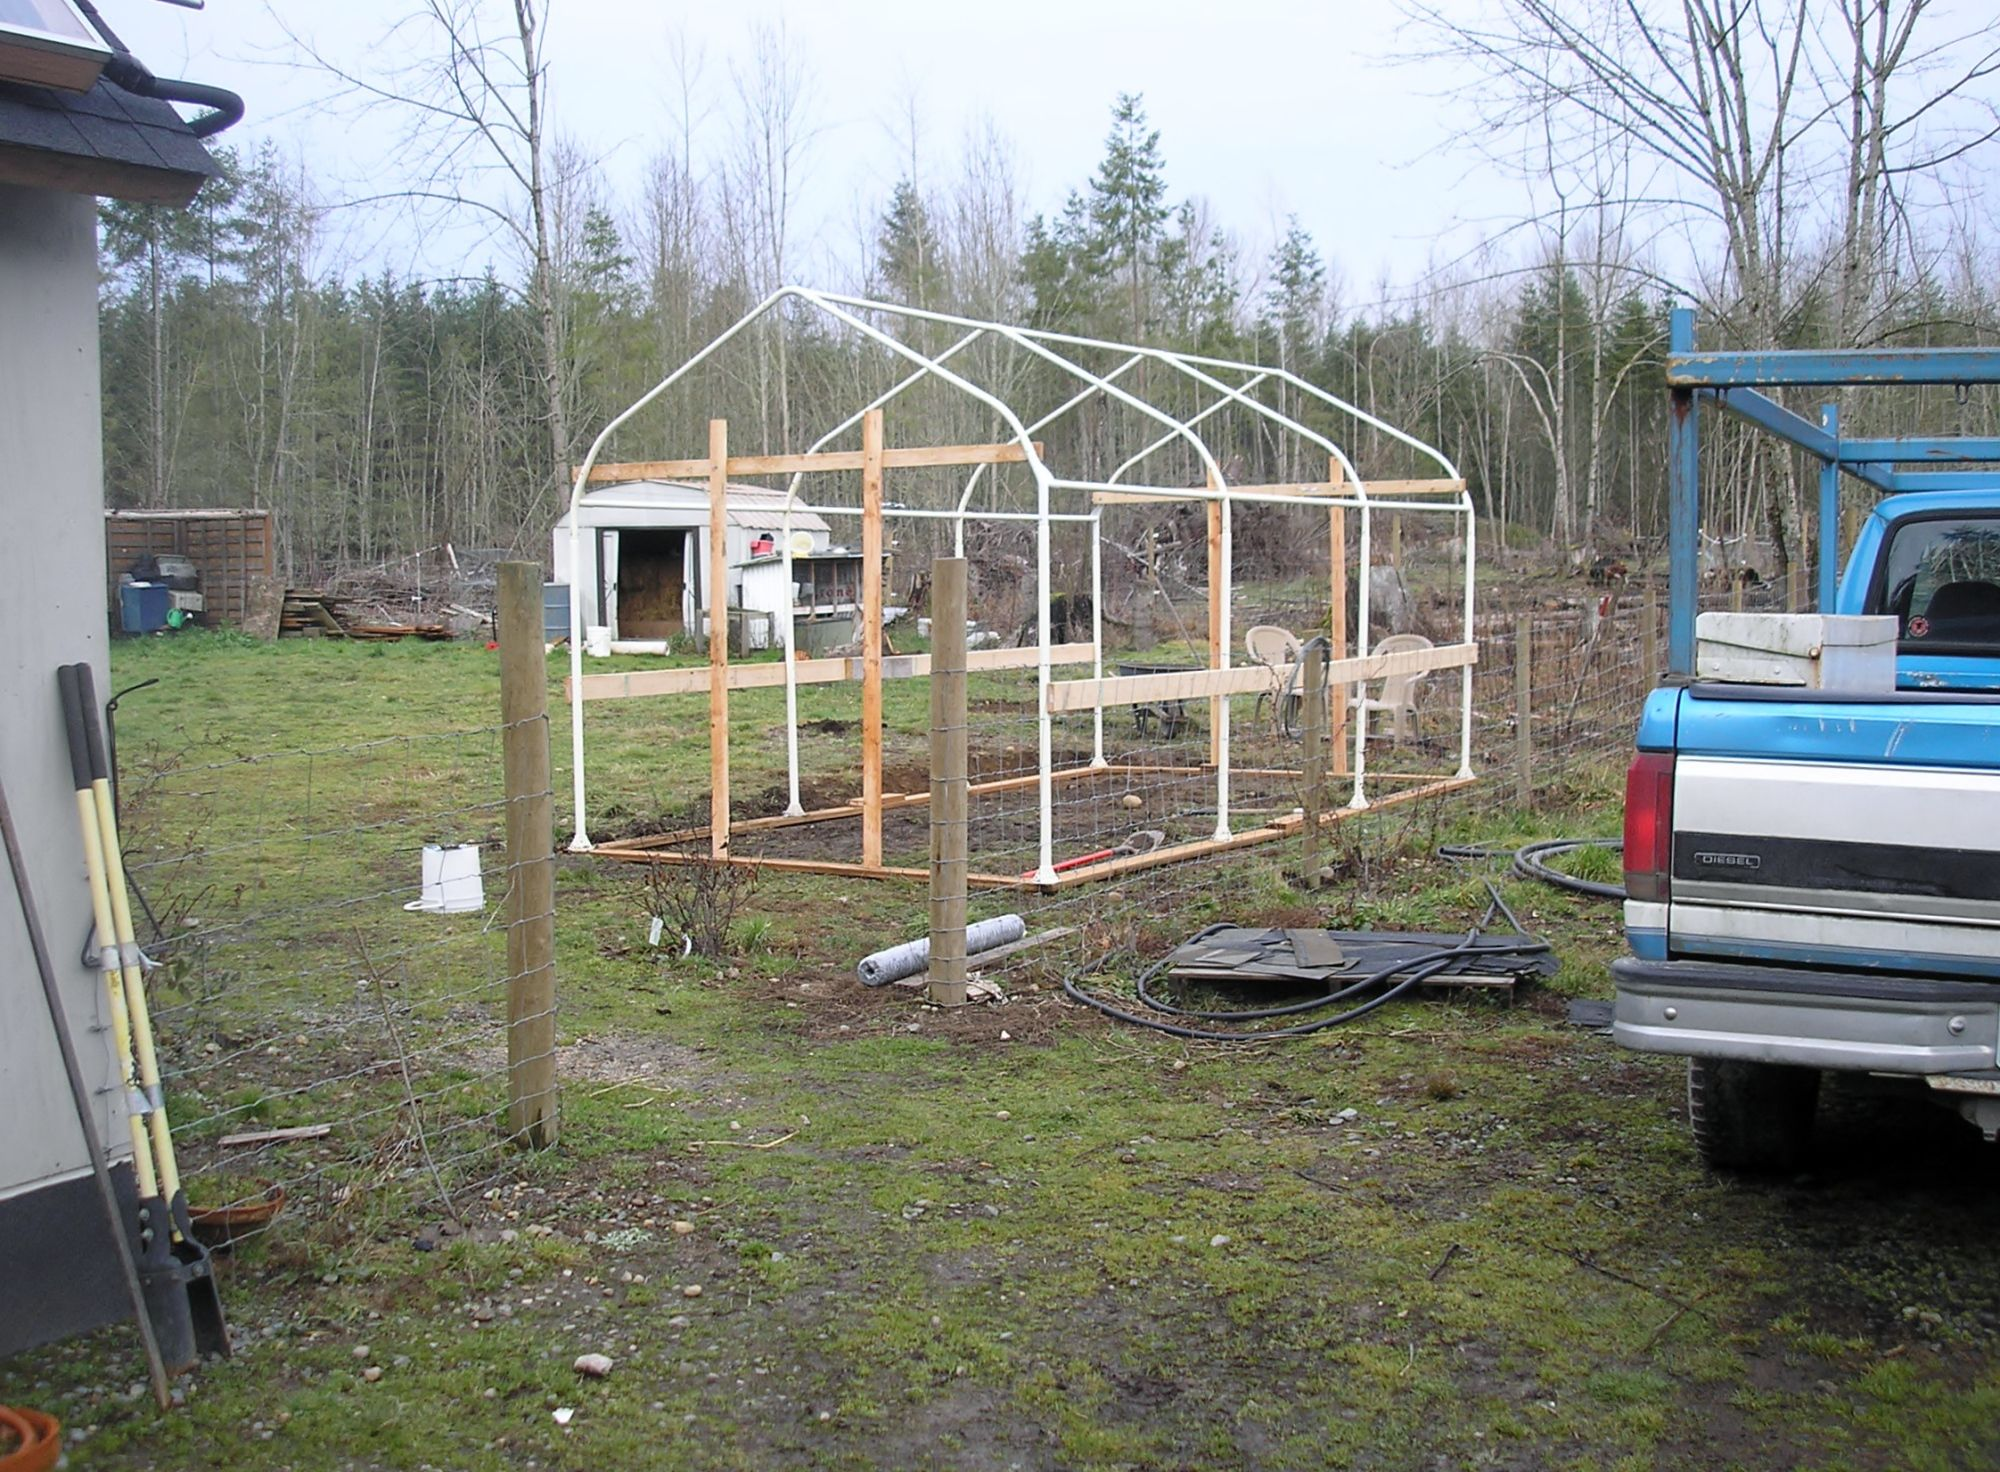 JERRY'S CARPORT TUBE FRAME GREENHOUSE Diy greenhouse